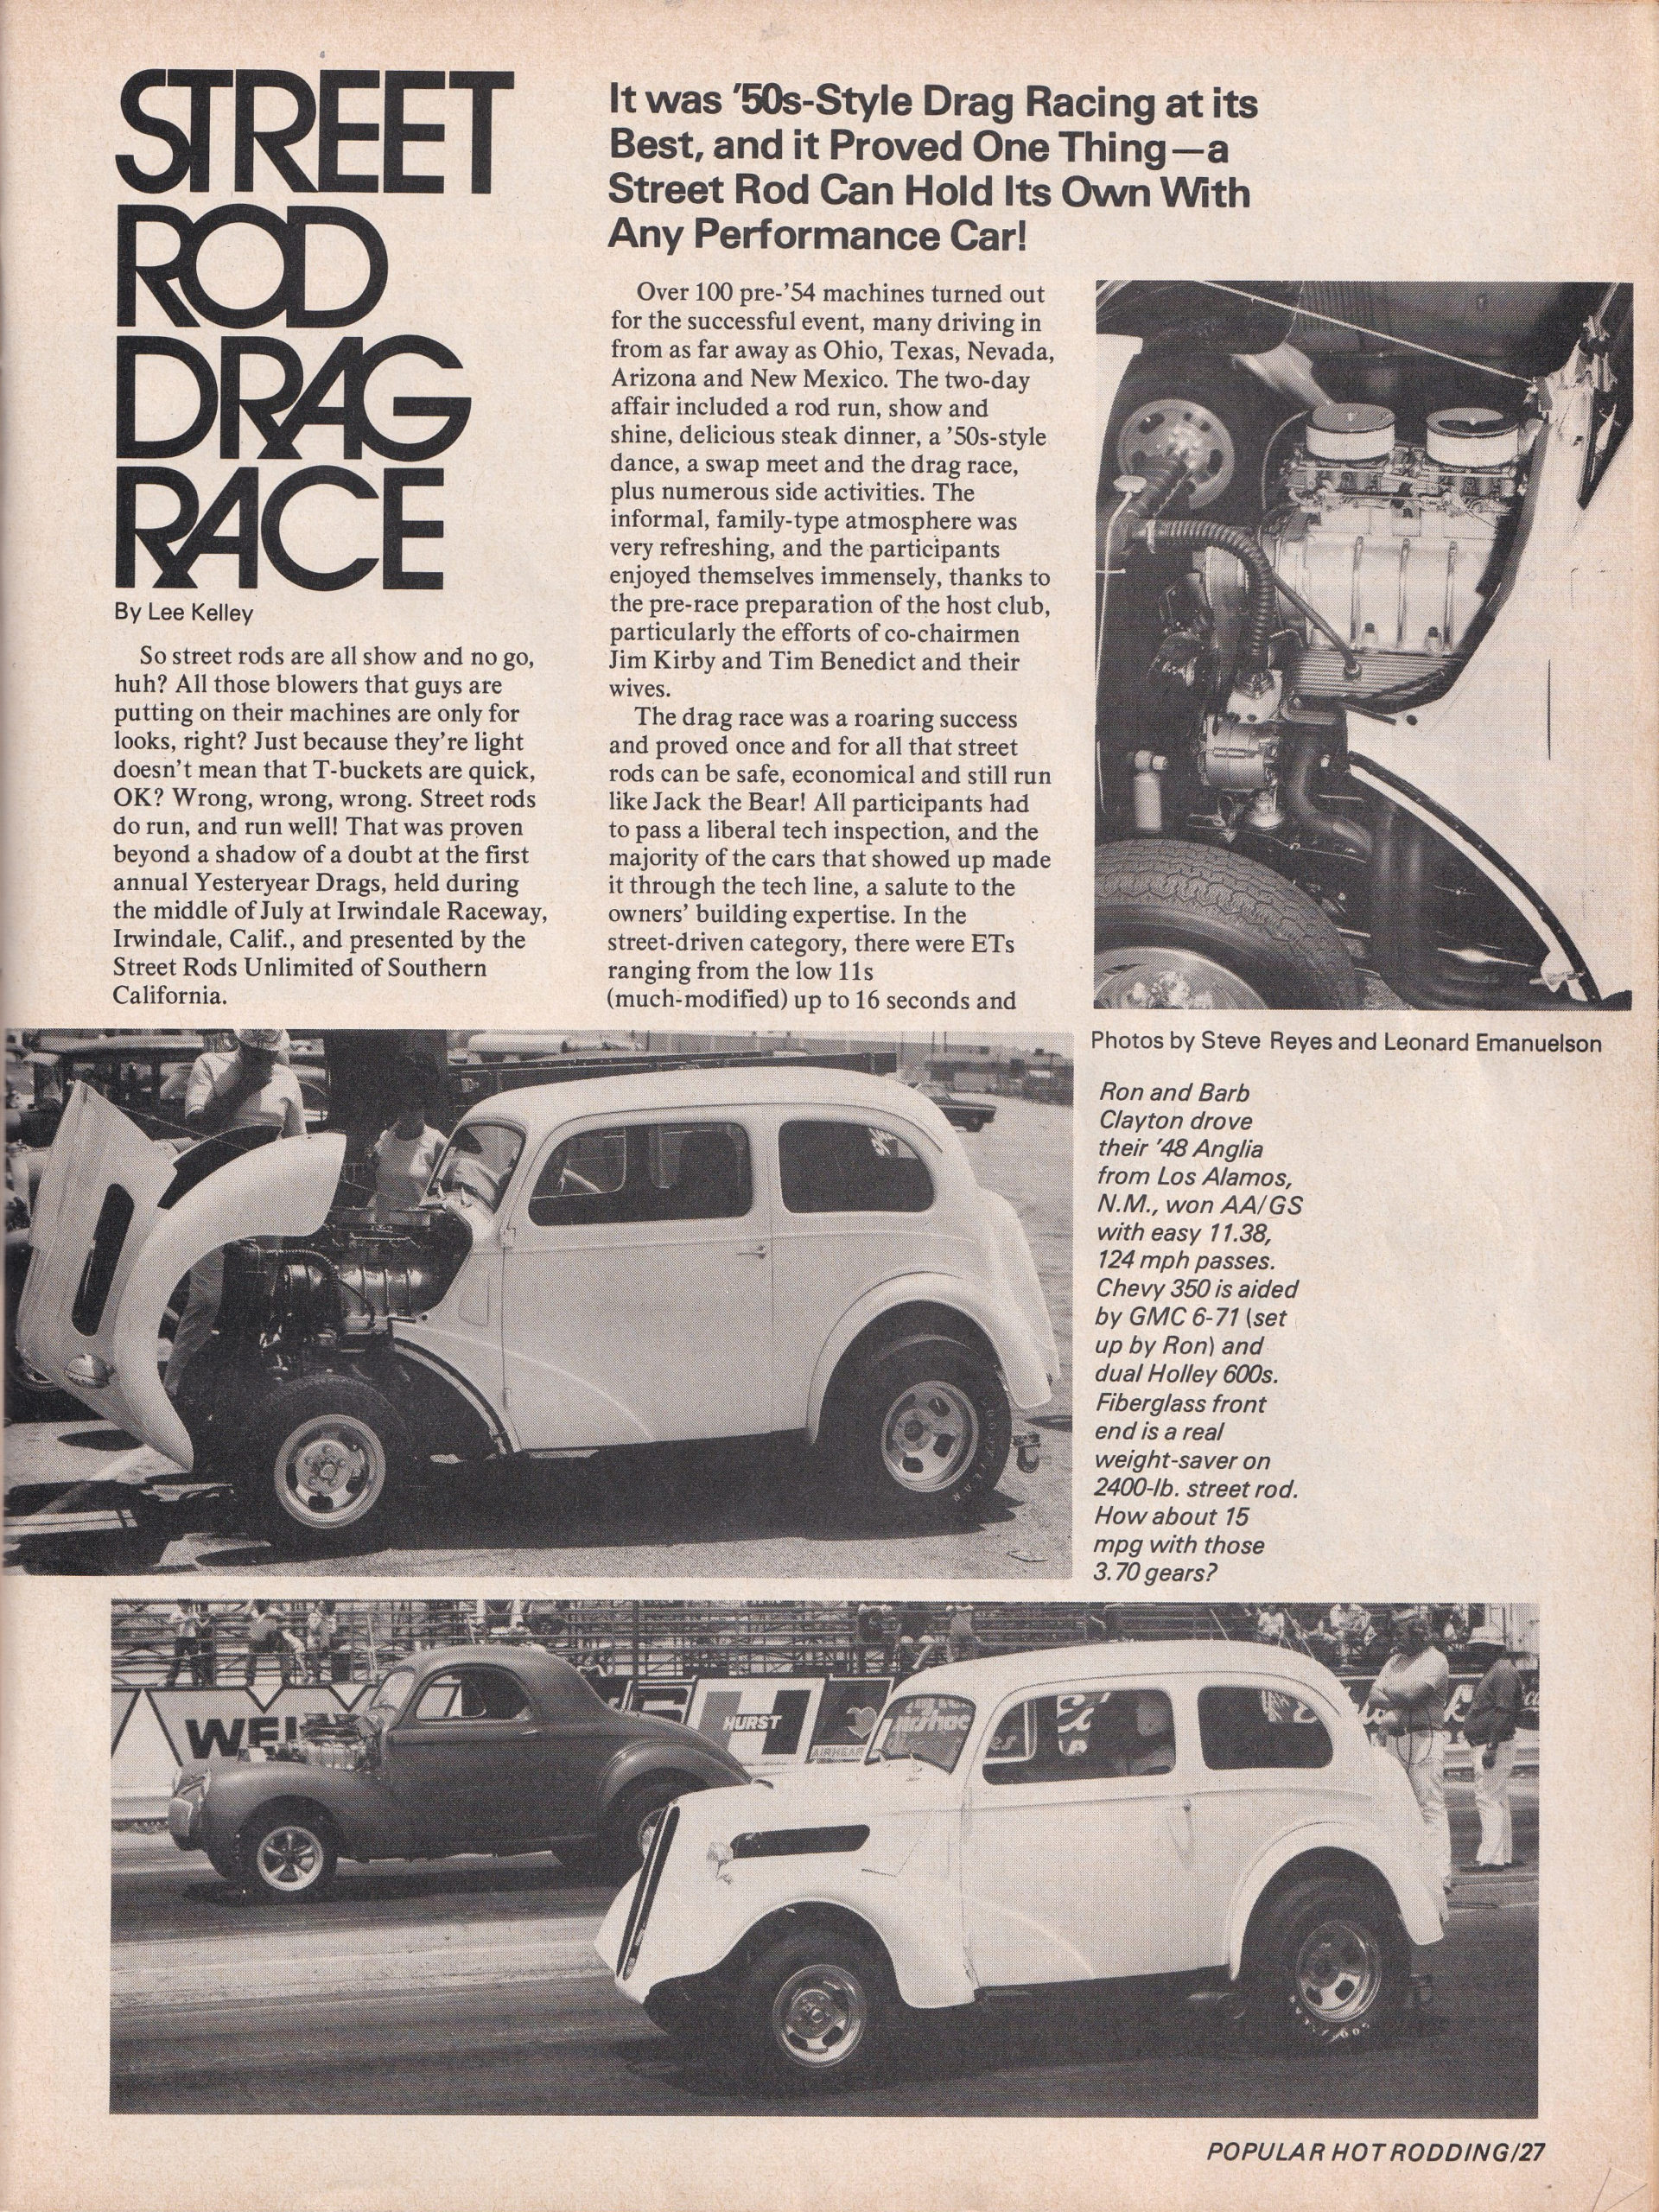 Street Rod Drag Race section from October 1975 issue of Popular Hot Rodding, page 2.